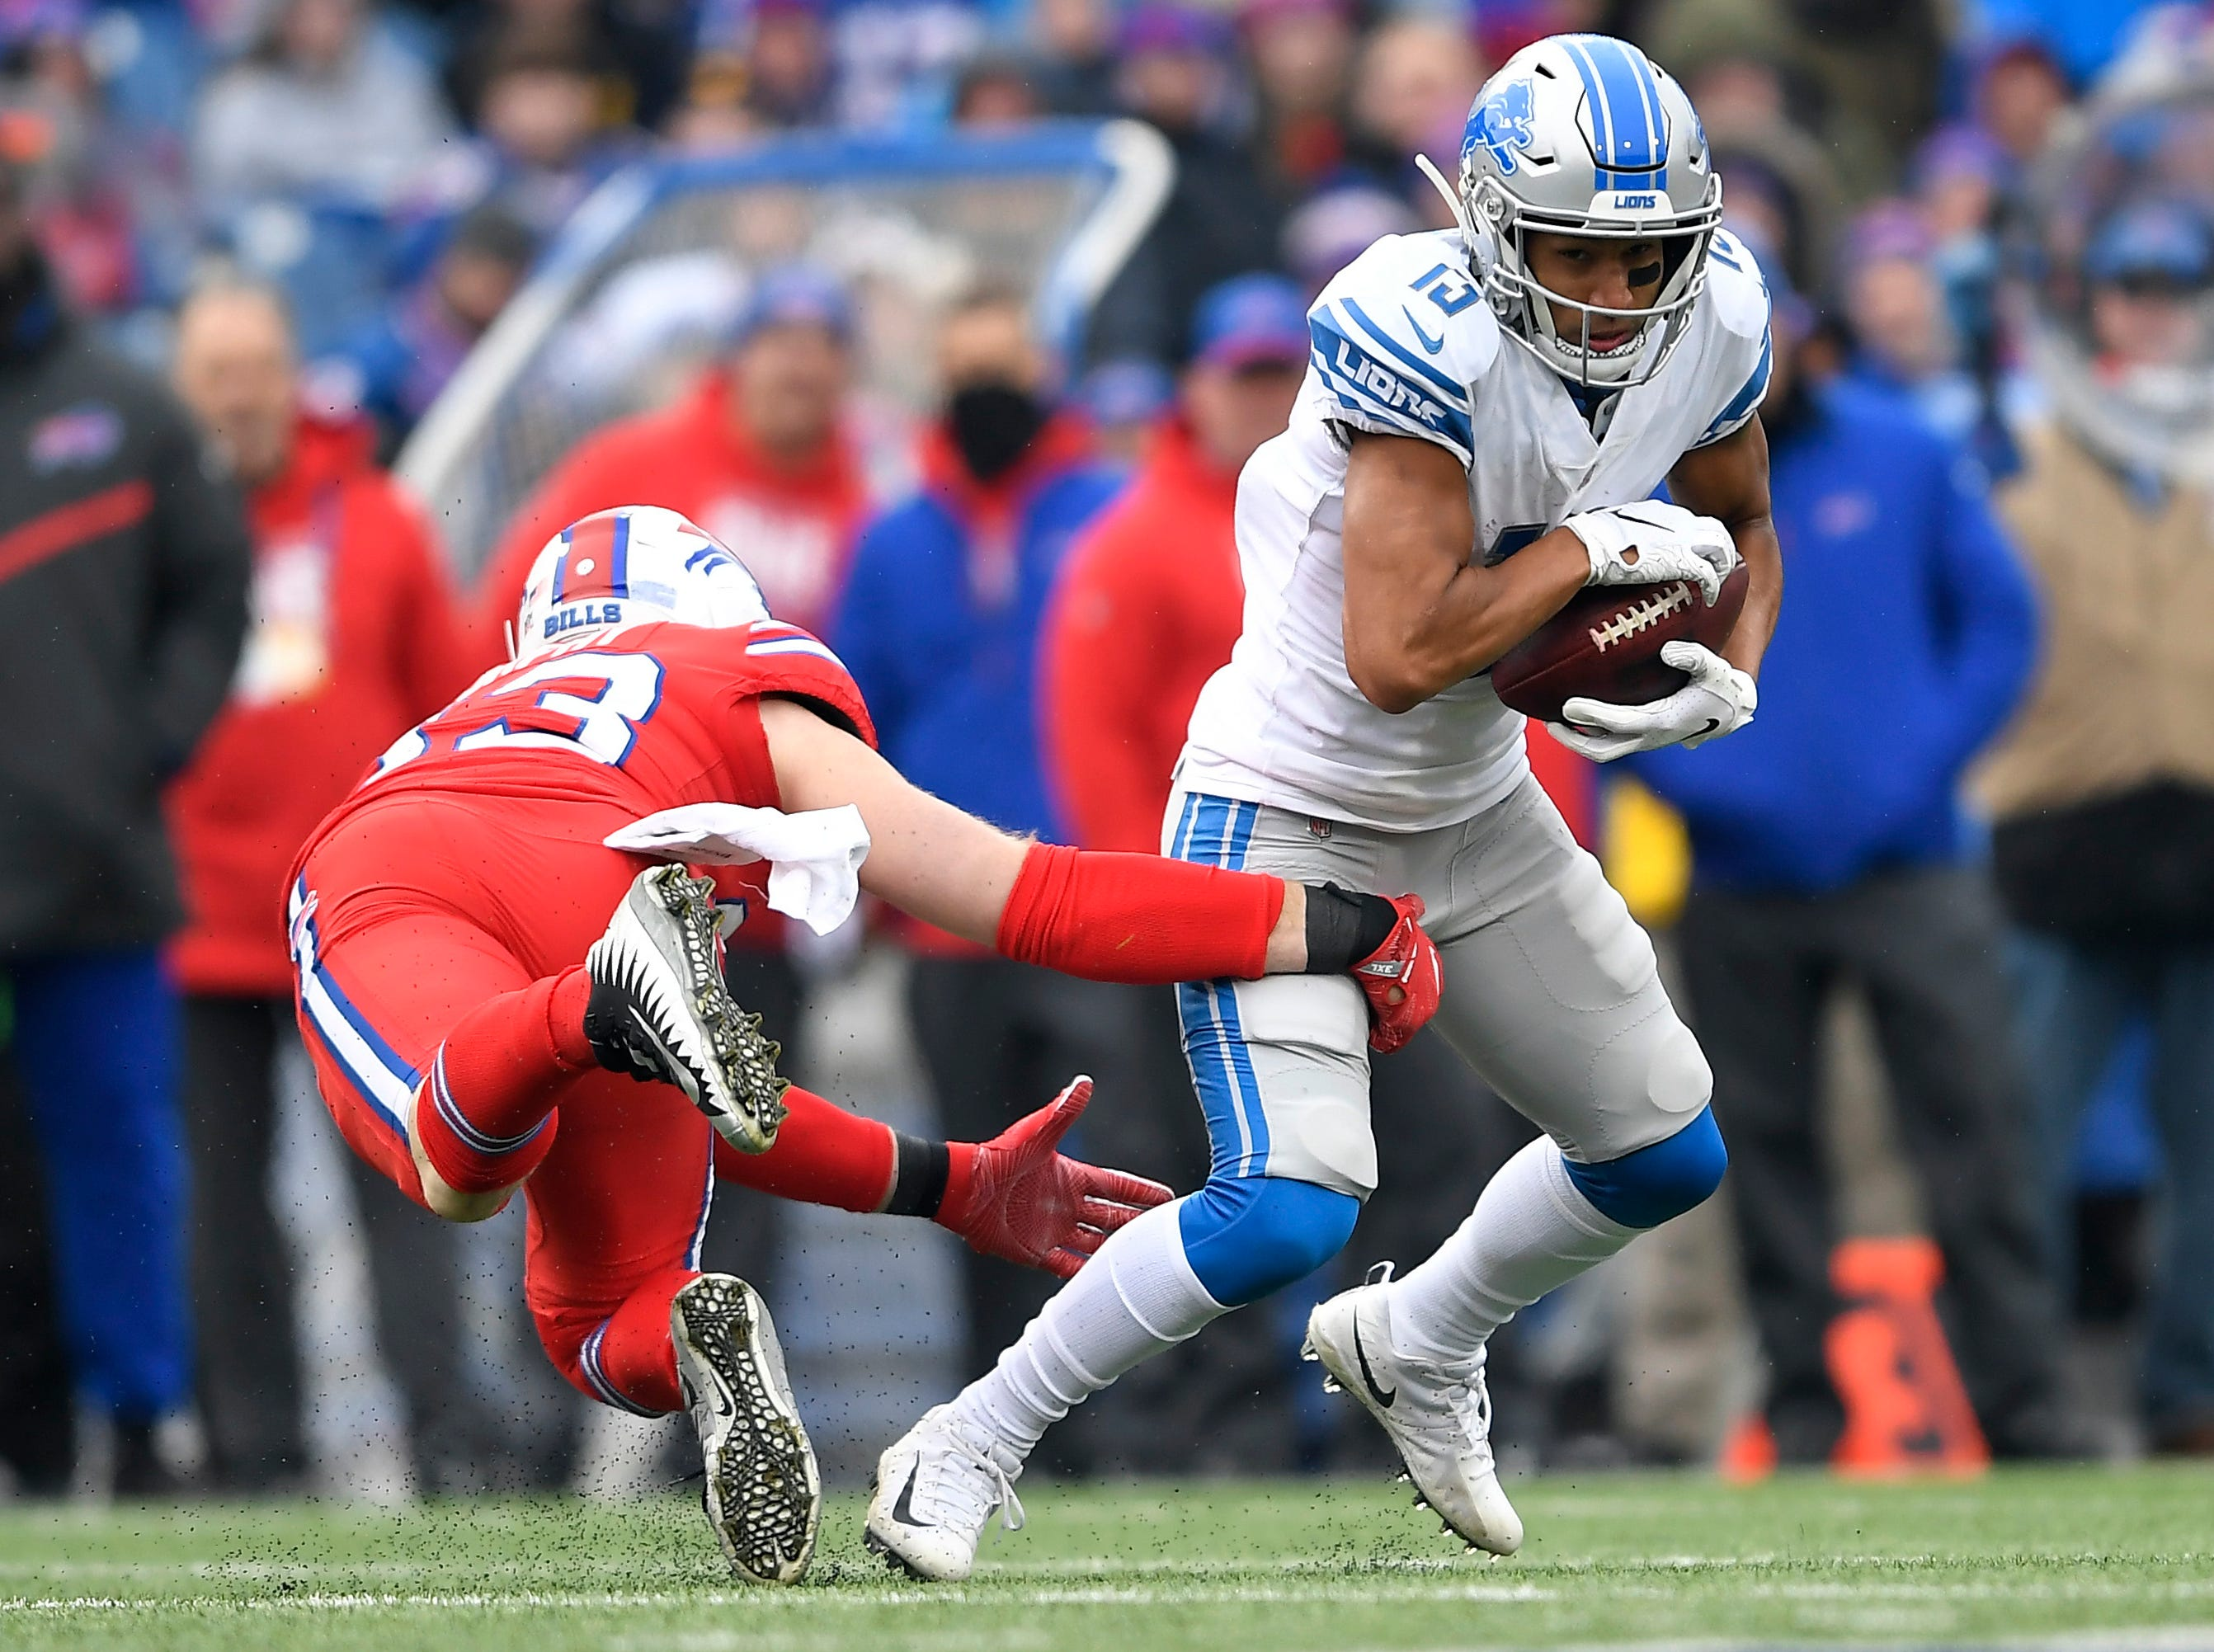 Detroit Lions wide receiver T.J. Jones (13) avoids a tackle during the first half.